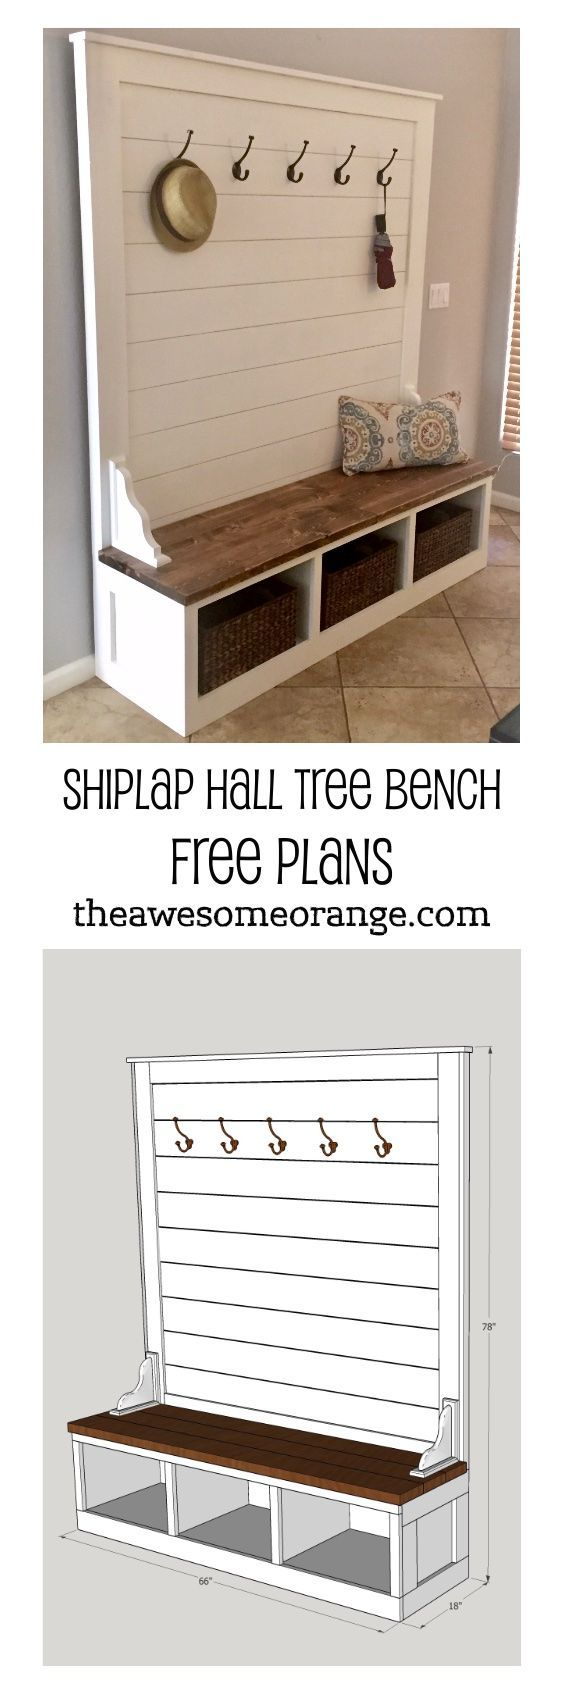 Shiplap Hall Tree Bench Plans Updated 1 8 19 Hall Tree Bench Diy Storage Bench Hall Tree